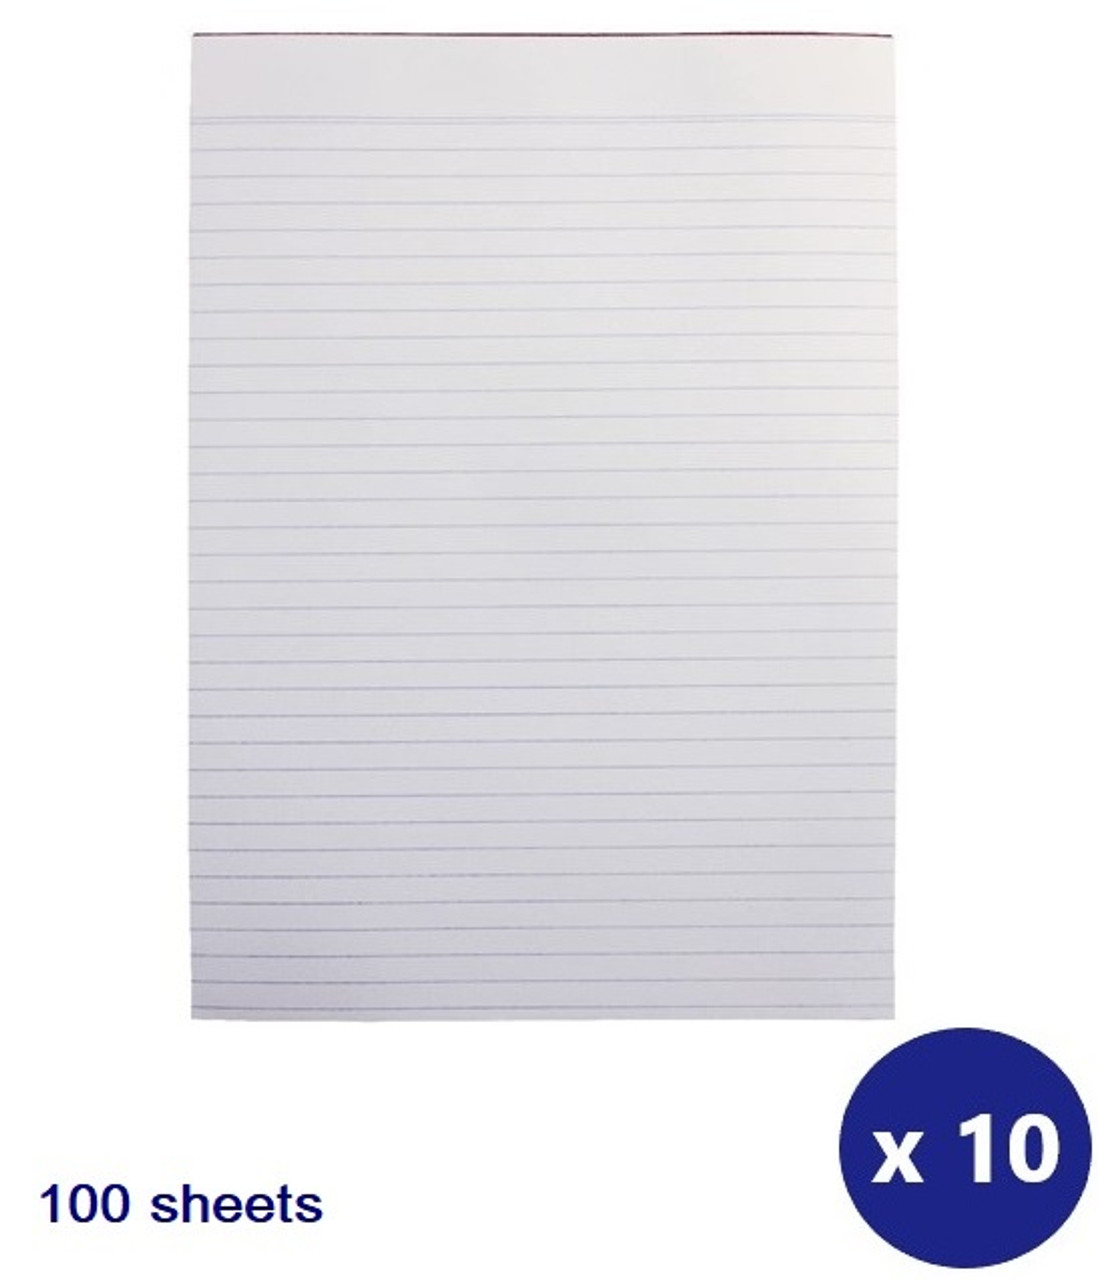 1 X 5 Star A4 Ruled Wirebound Notebook Pack Of 10 Office Work School Stationary